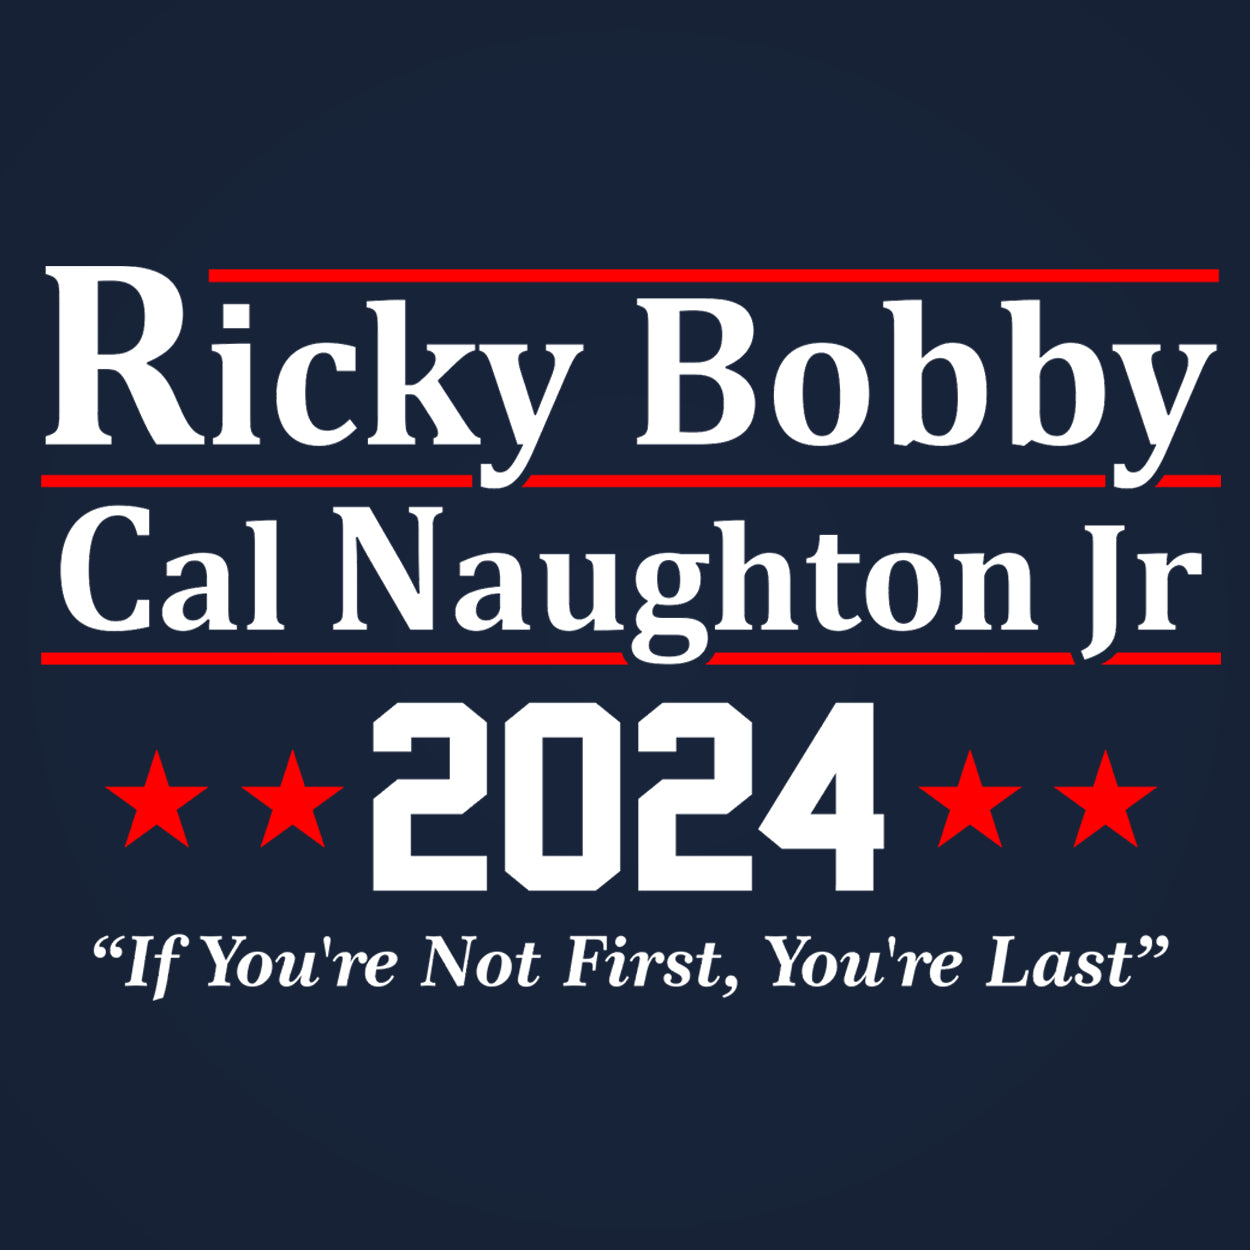 Ricky Bobby Cal Naughton Jr 2024 Election